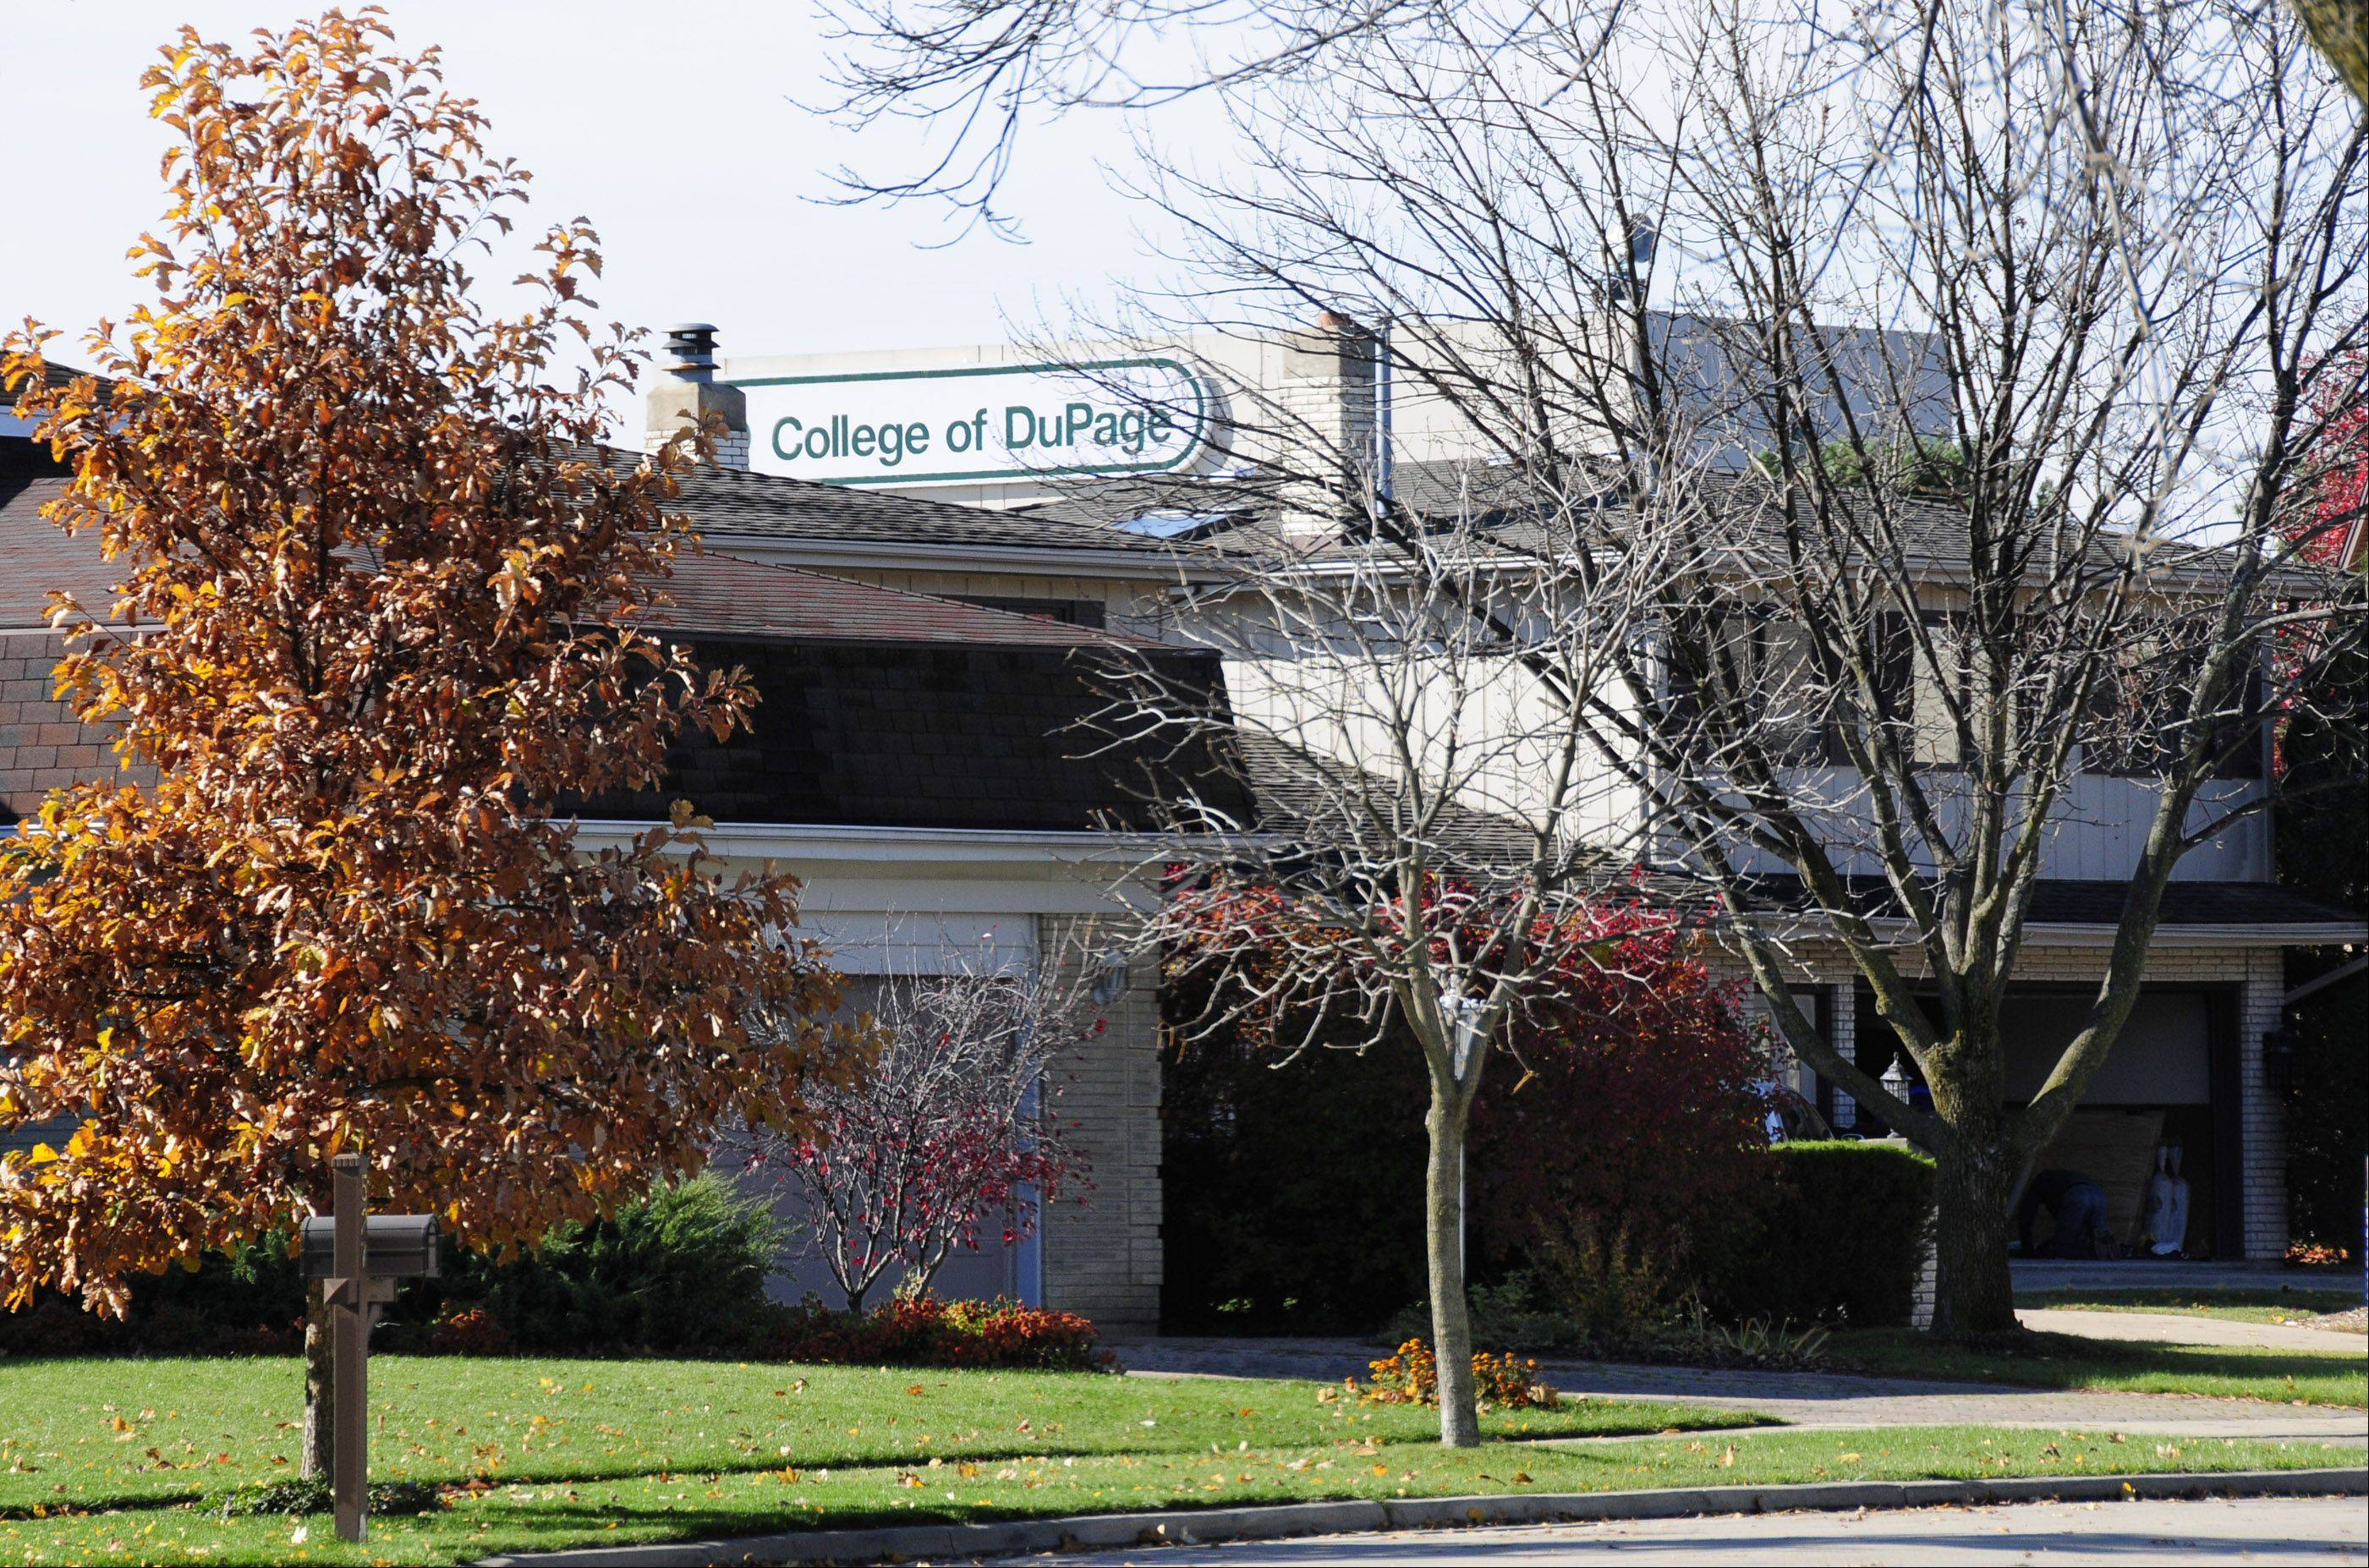 Under a deal struck this week, the College of DuPage's campus will remain a part of the village of Glen Ellyn's corporate limits, though it will fall under the jurisdiction of the county.